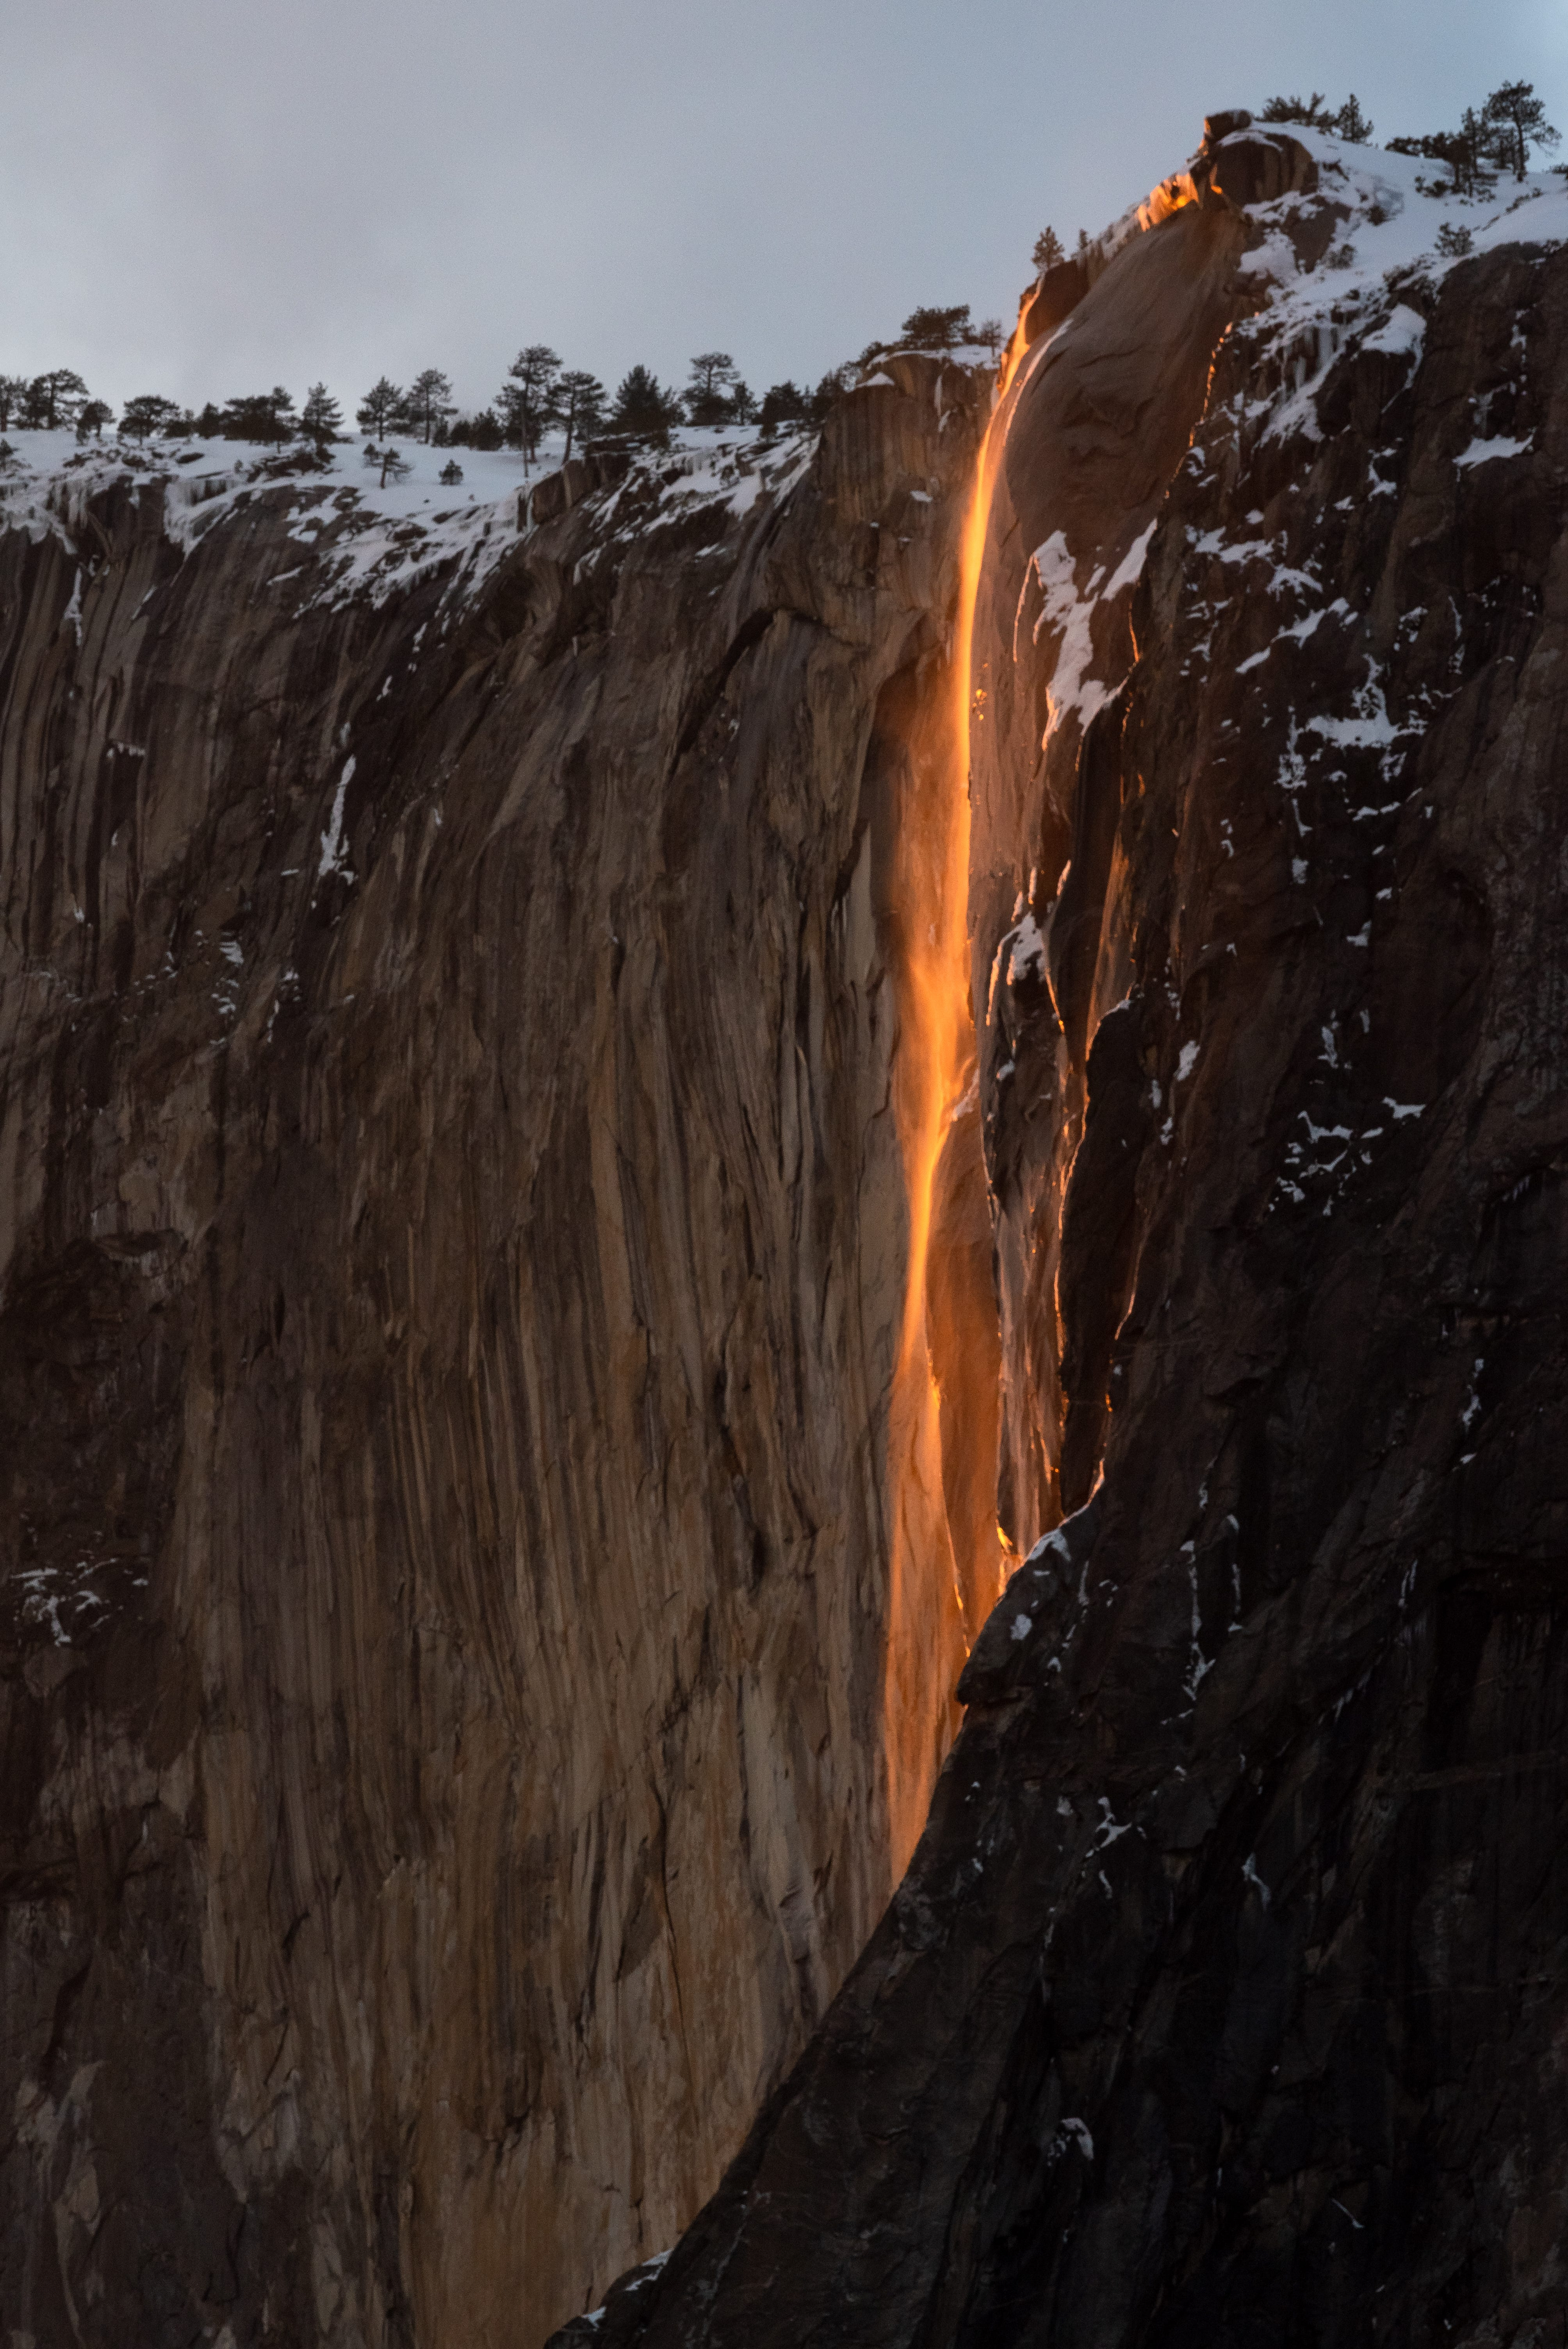 Yosemite 'firefall' returns to national park this week. Here's how to see the phenomenon